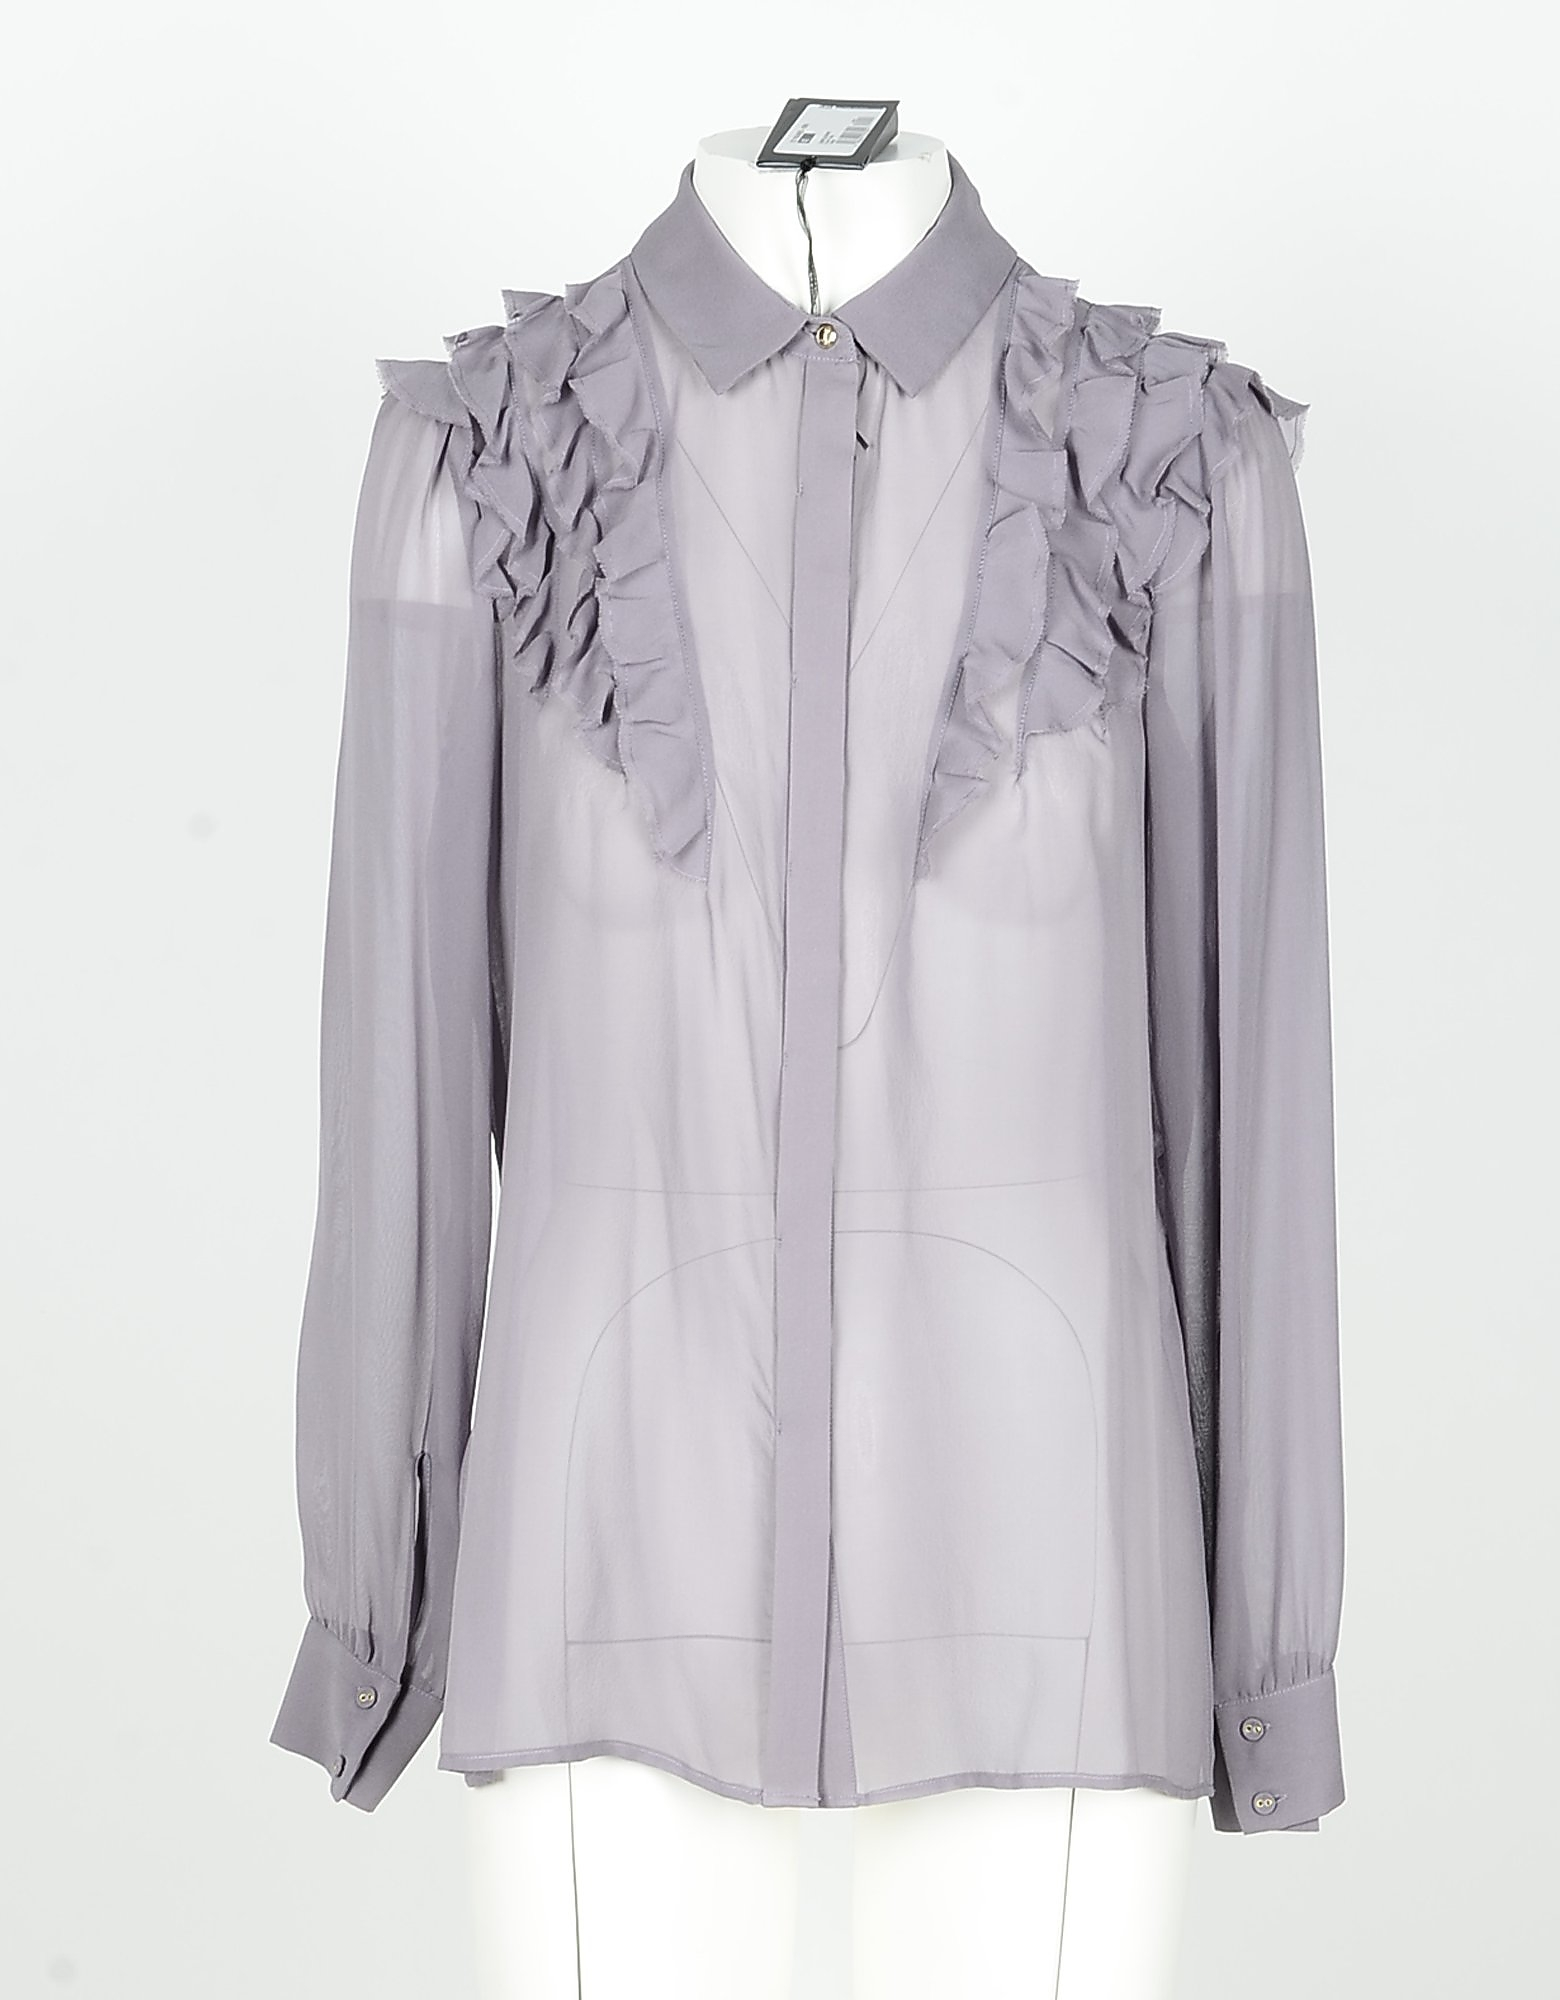 Patrizia Pepe Designer Shirts, Lilac Transparent Silk Women's Shirt